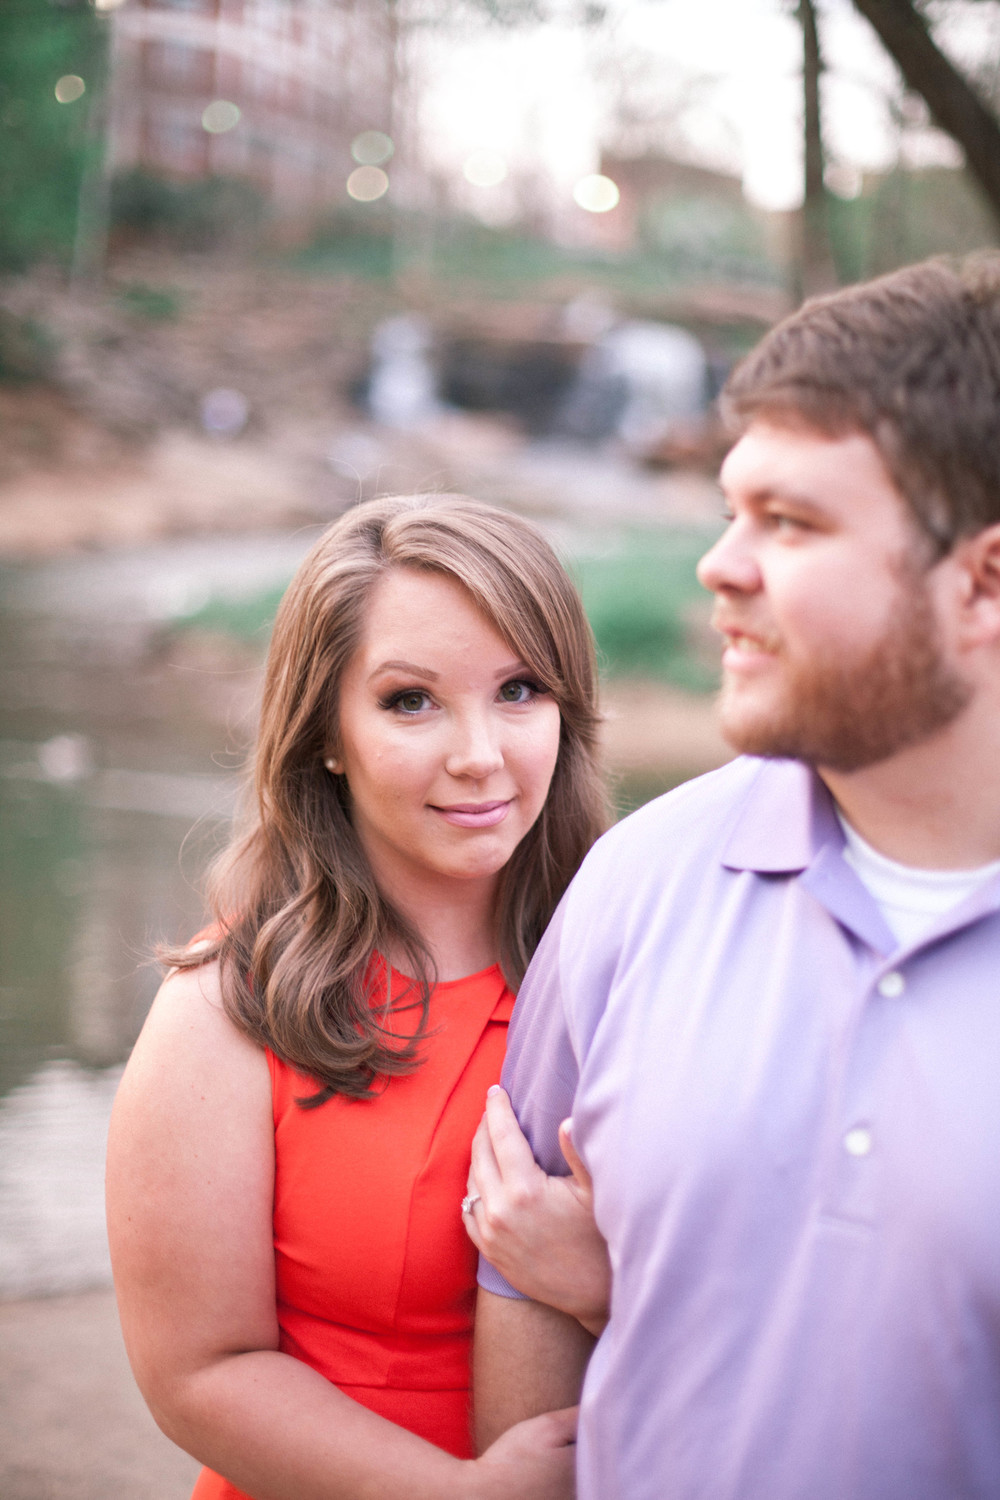 zach_gabbie_engagement_poured_out_photography-54.jpg